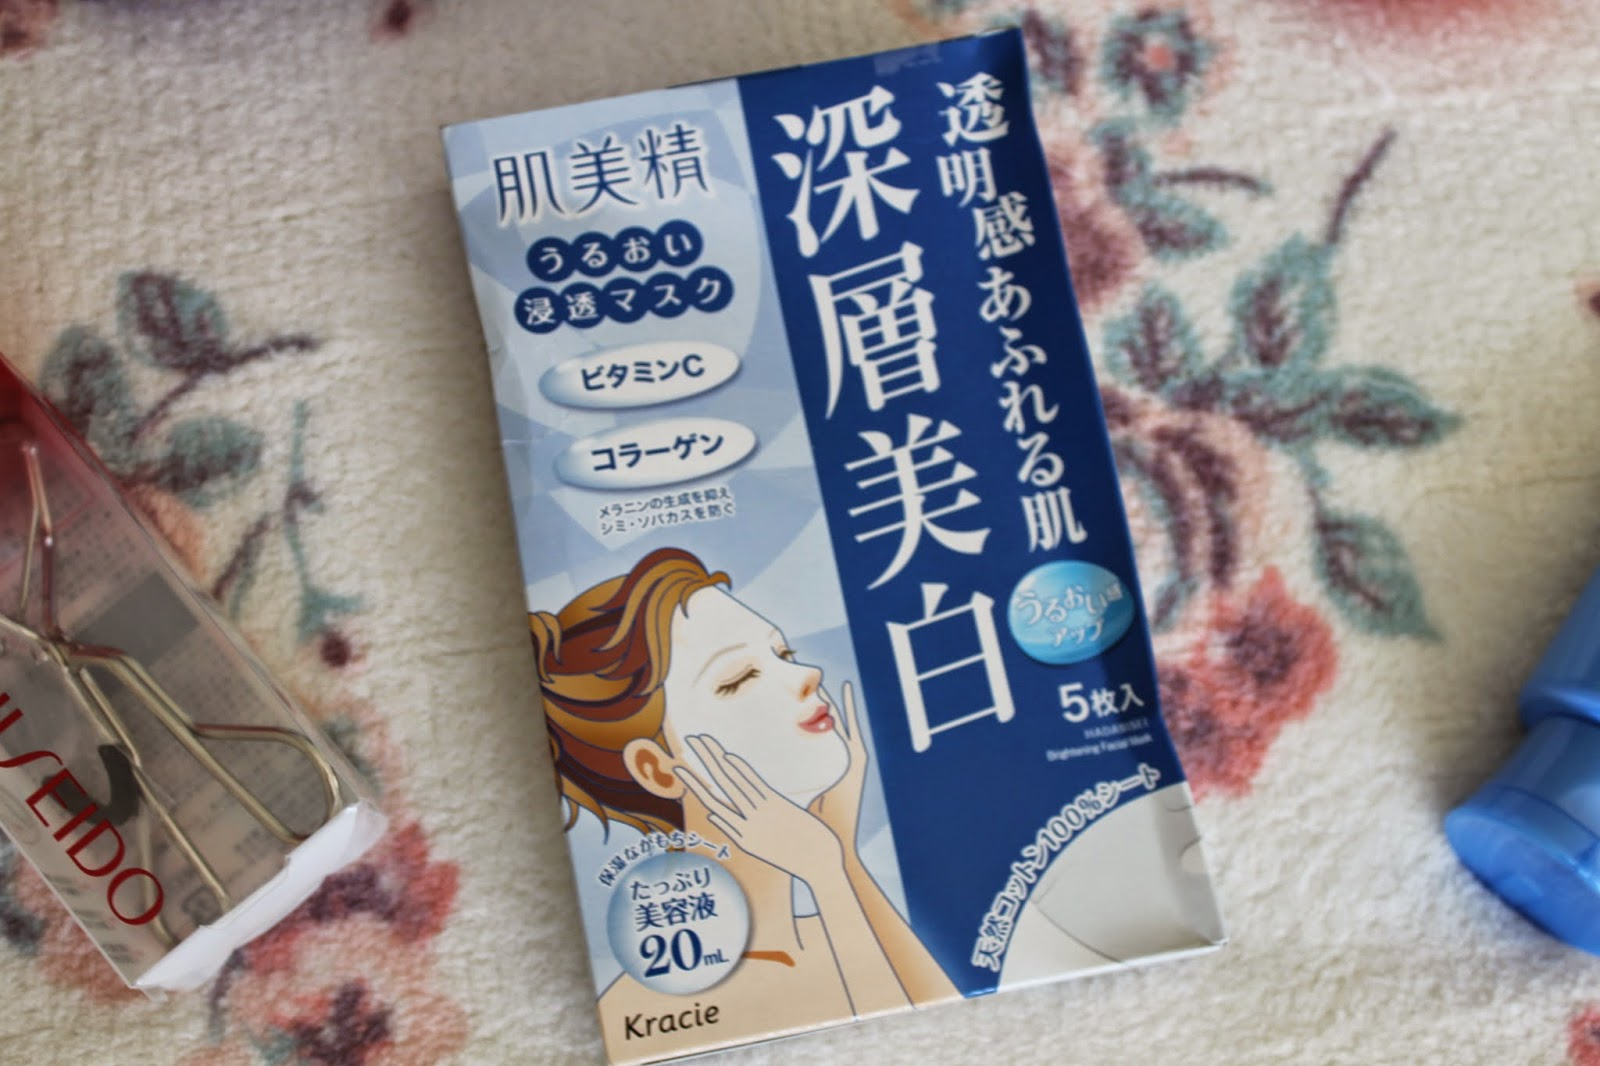 Japanese Beauty Haul Cleanser Mask Moisturiser Eyelash Curler Cotton Pads